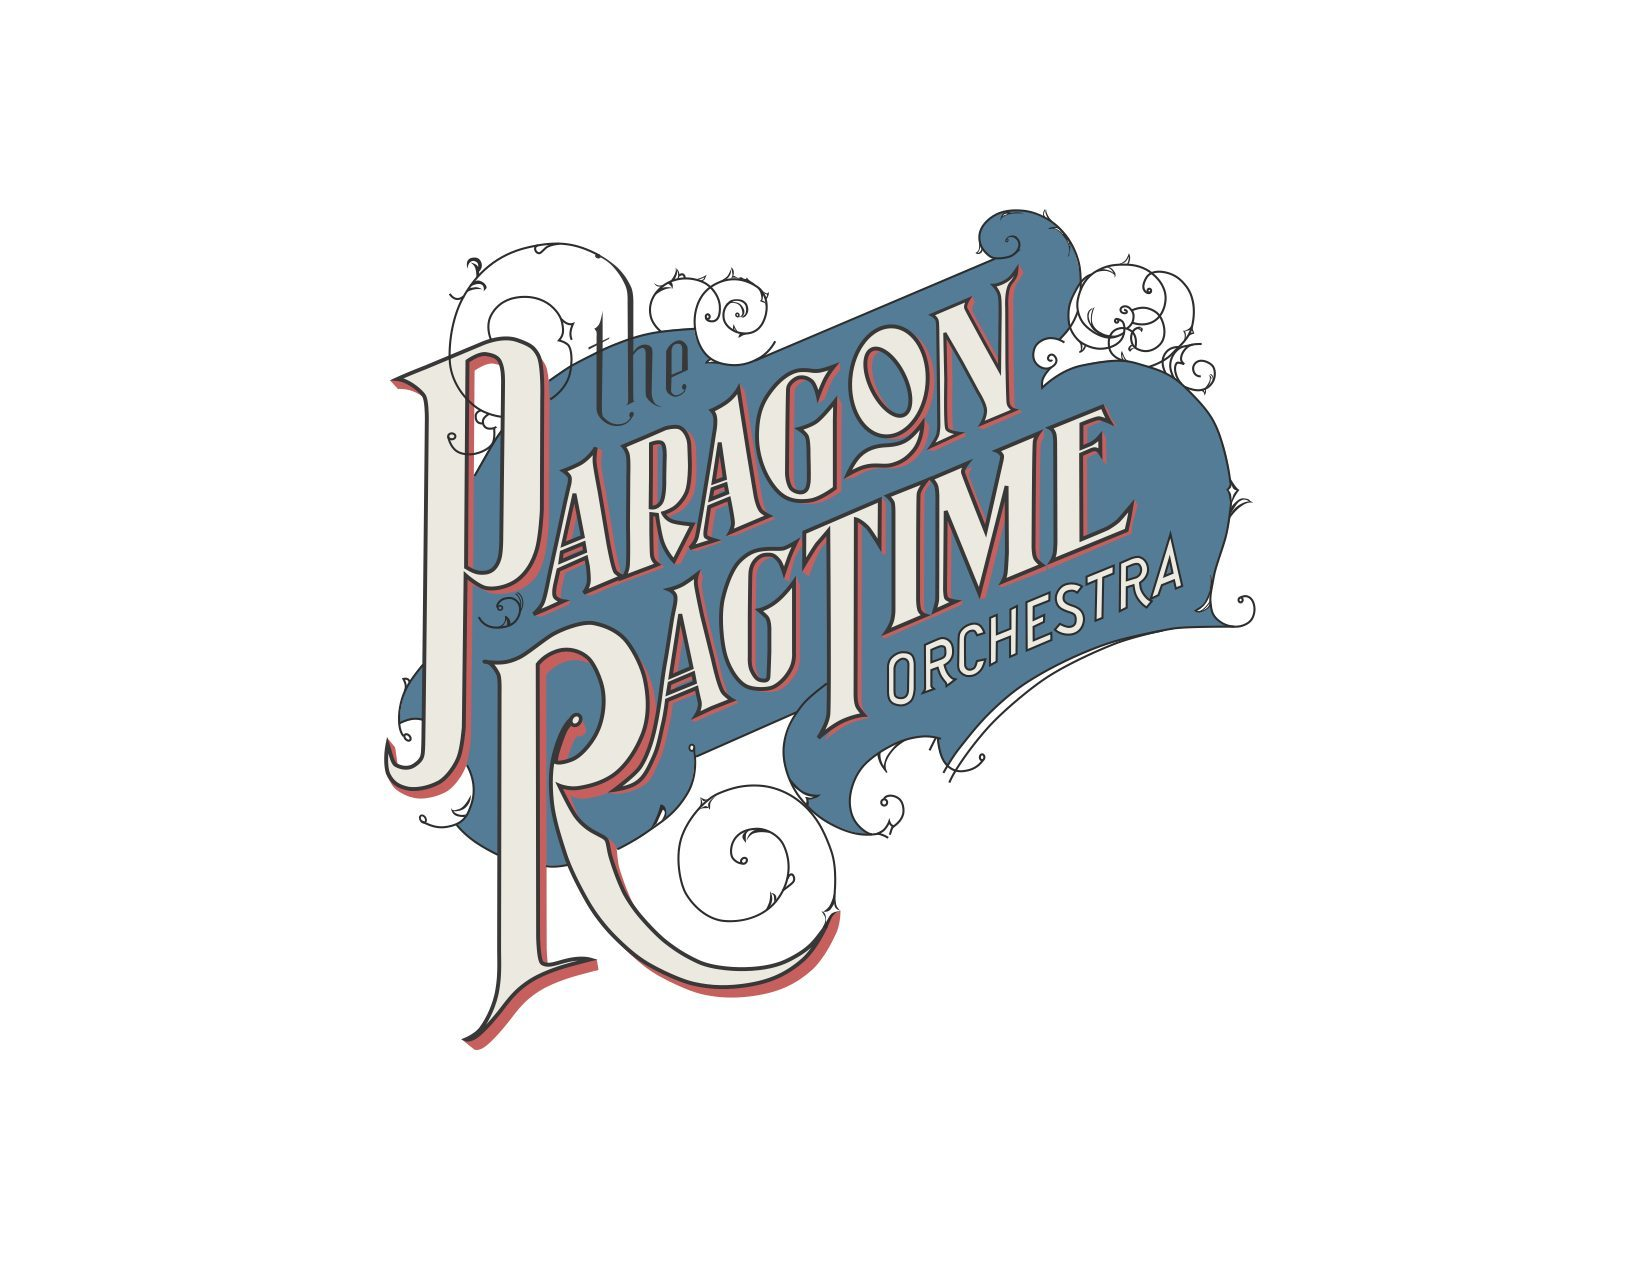 The Paragon Ragtime Orchestra's official logo.